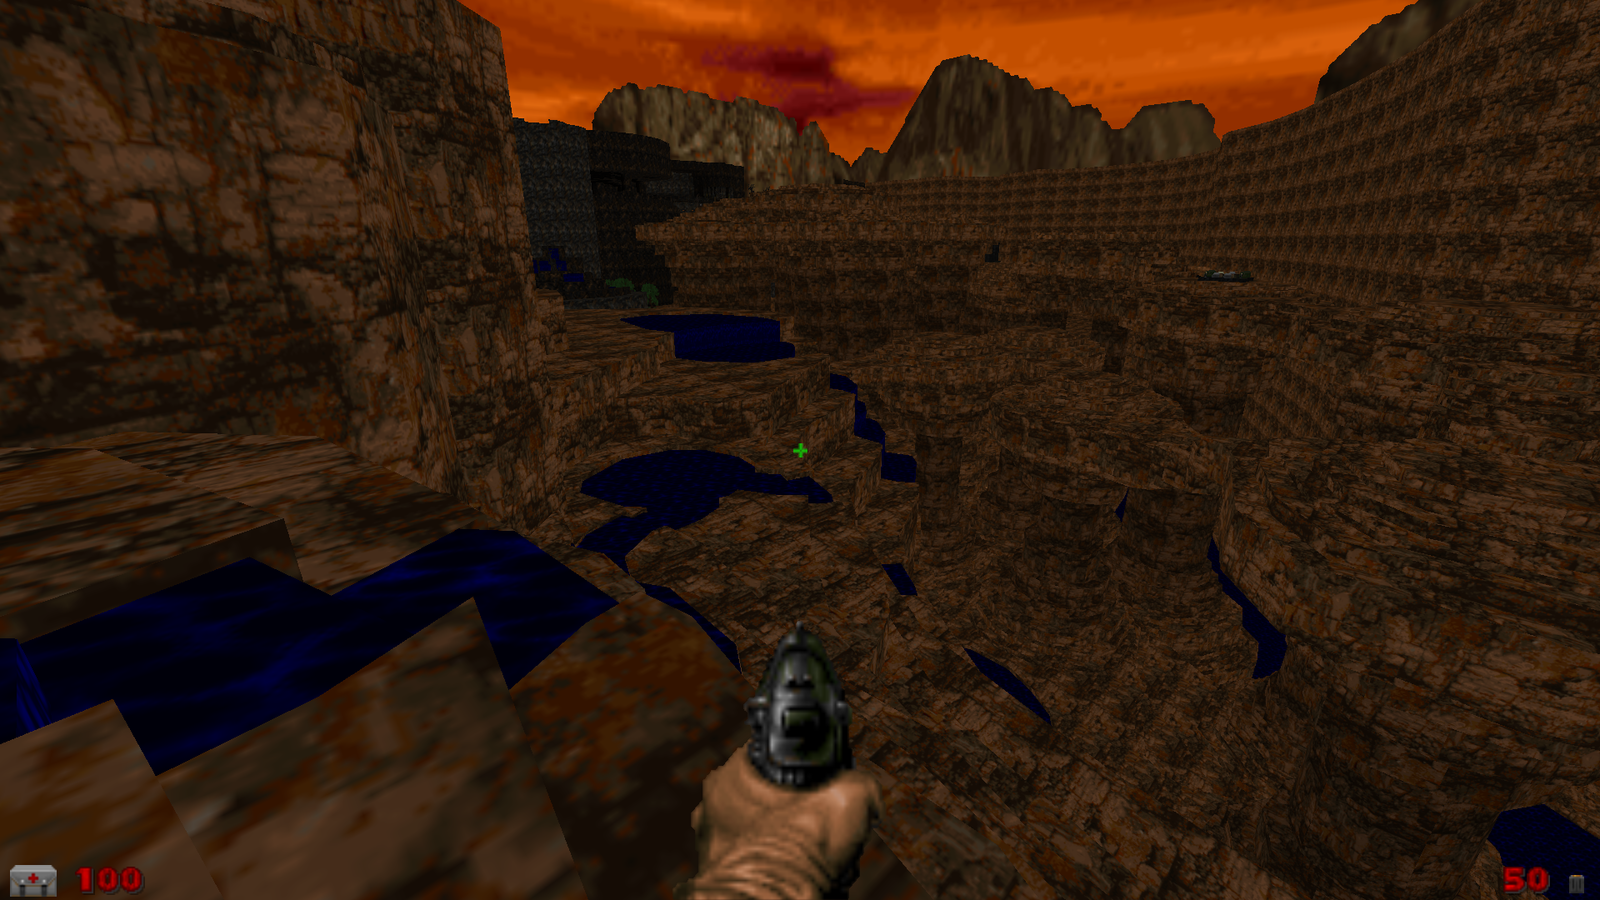 Screenshot_Doom_20180319_190623.png.26a47292a2b501a0bdaa75760e2a9931.png